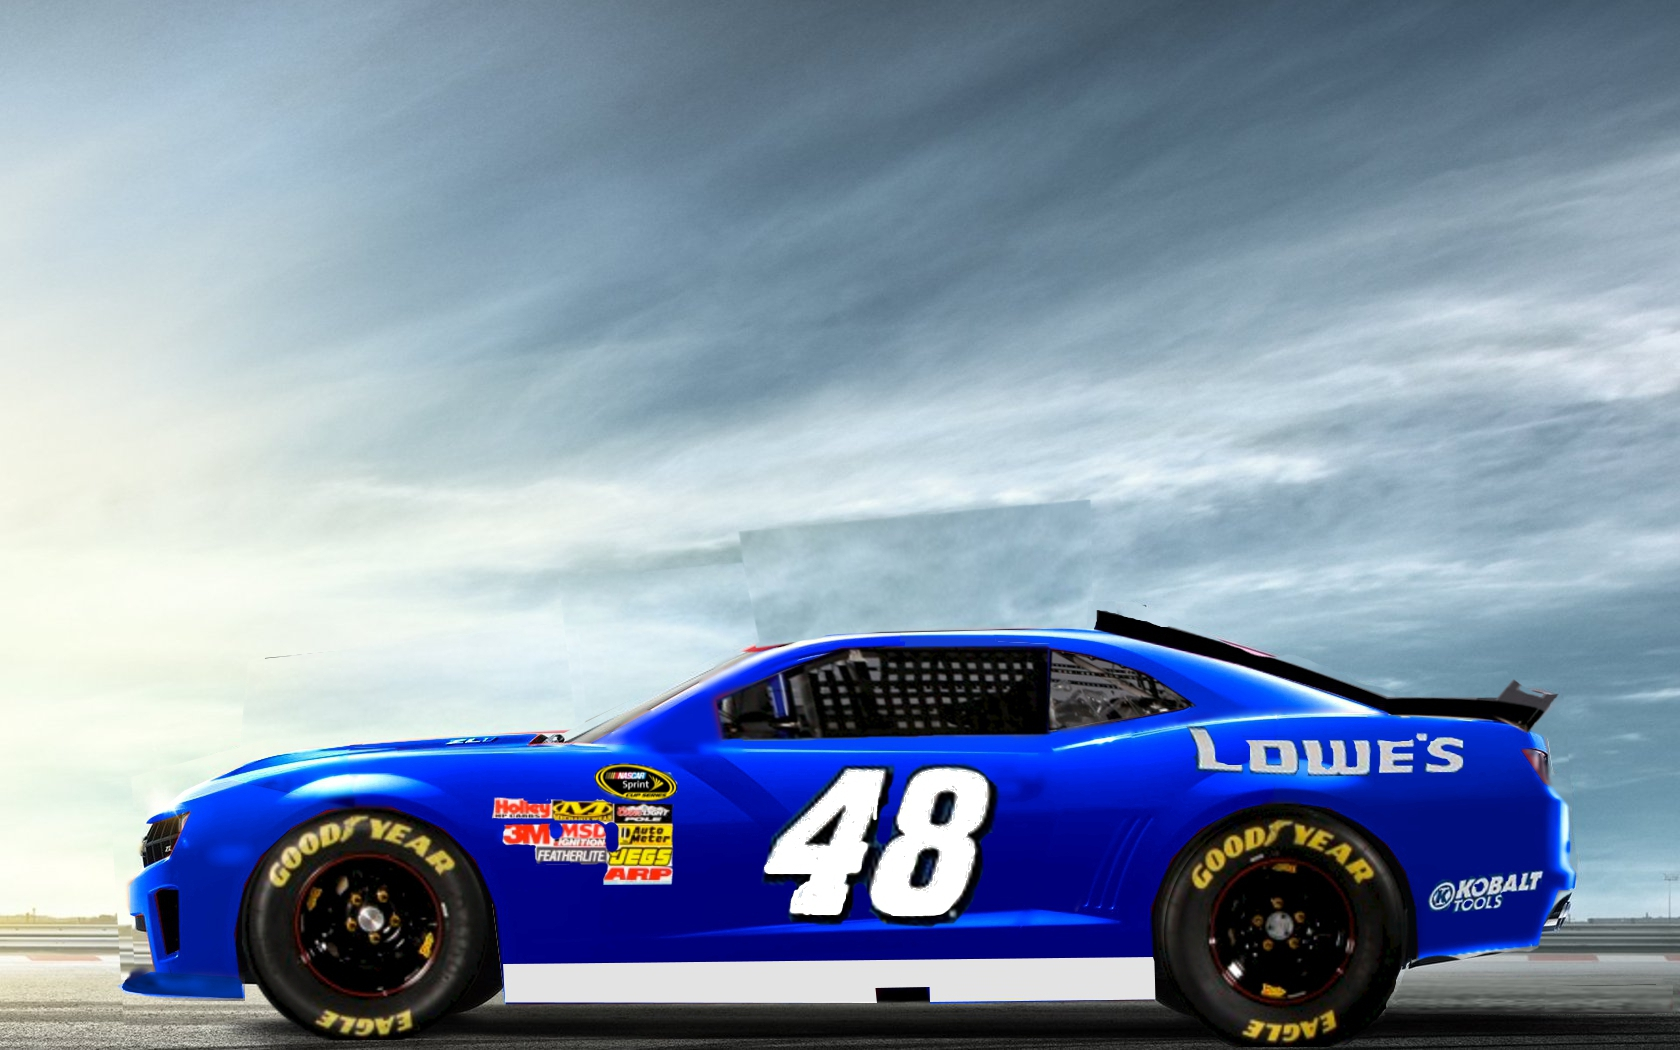 Jimmie Johnson S 2012 Lowes Chevrolet Camaro By Chef211 On Deviantart